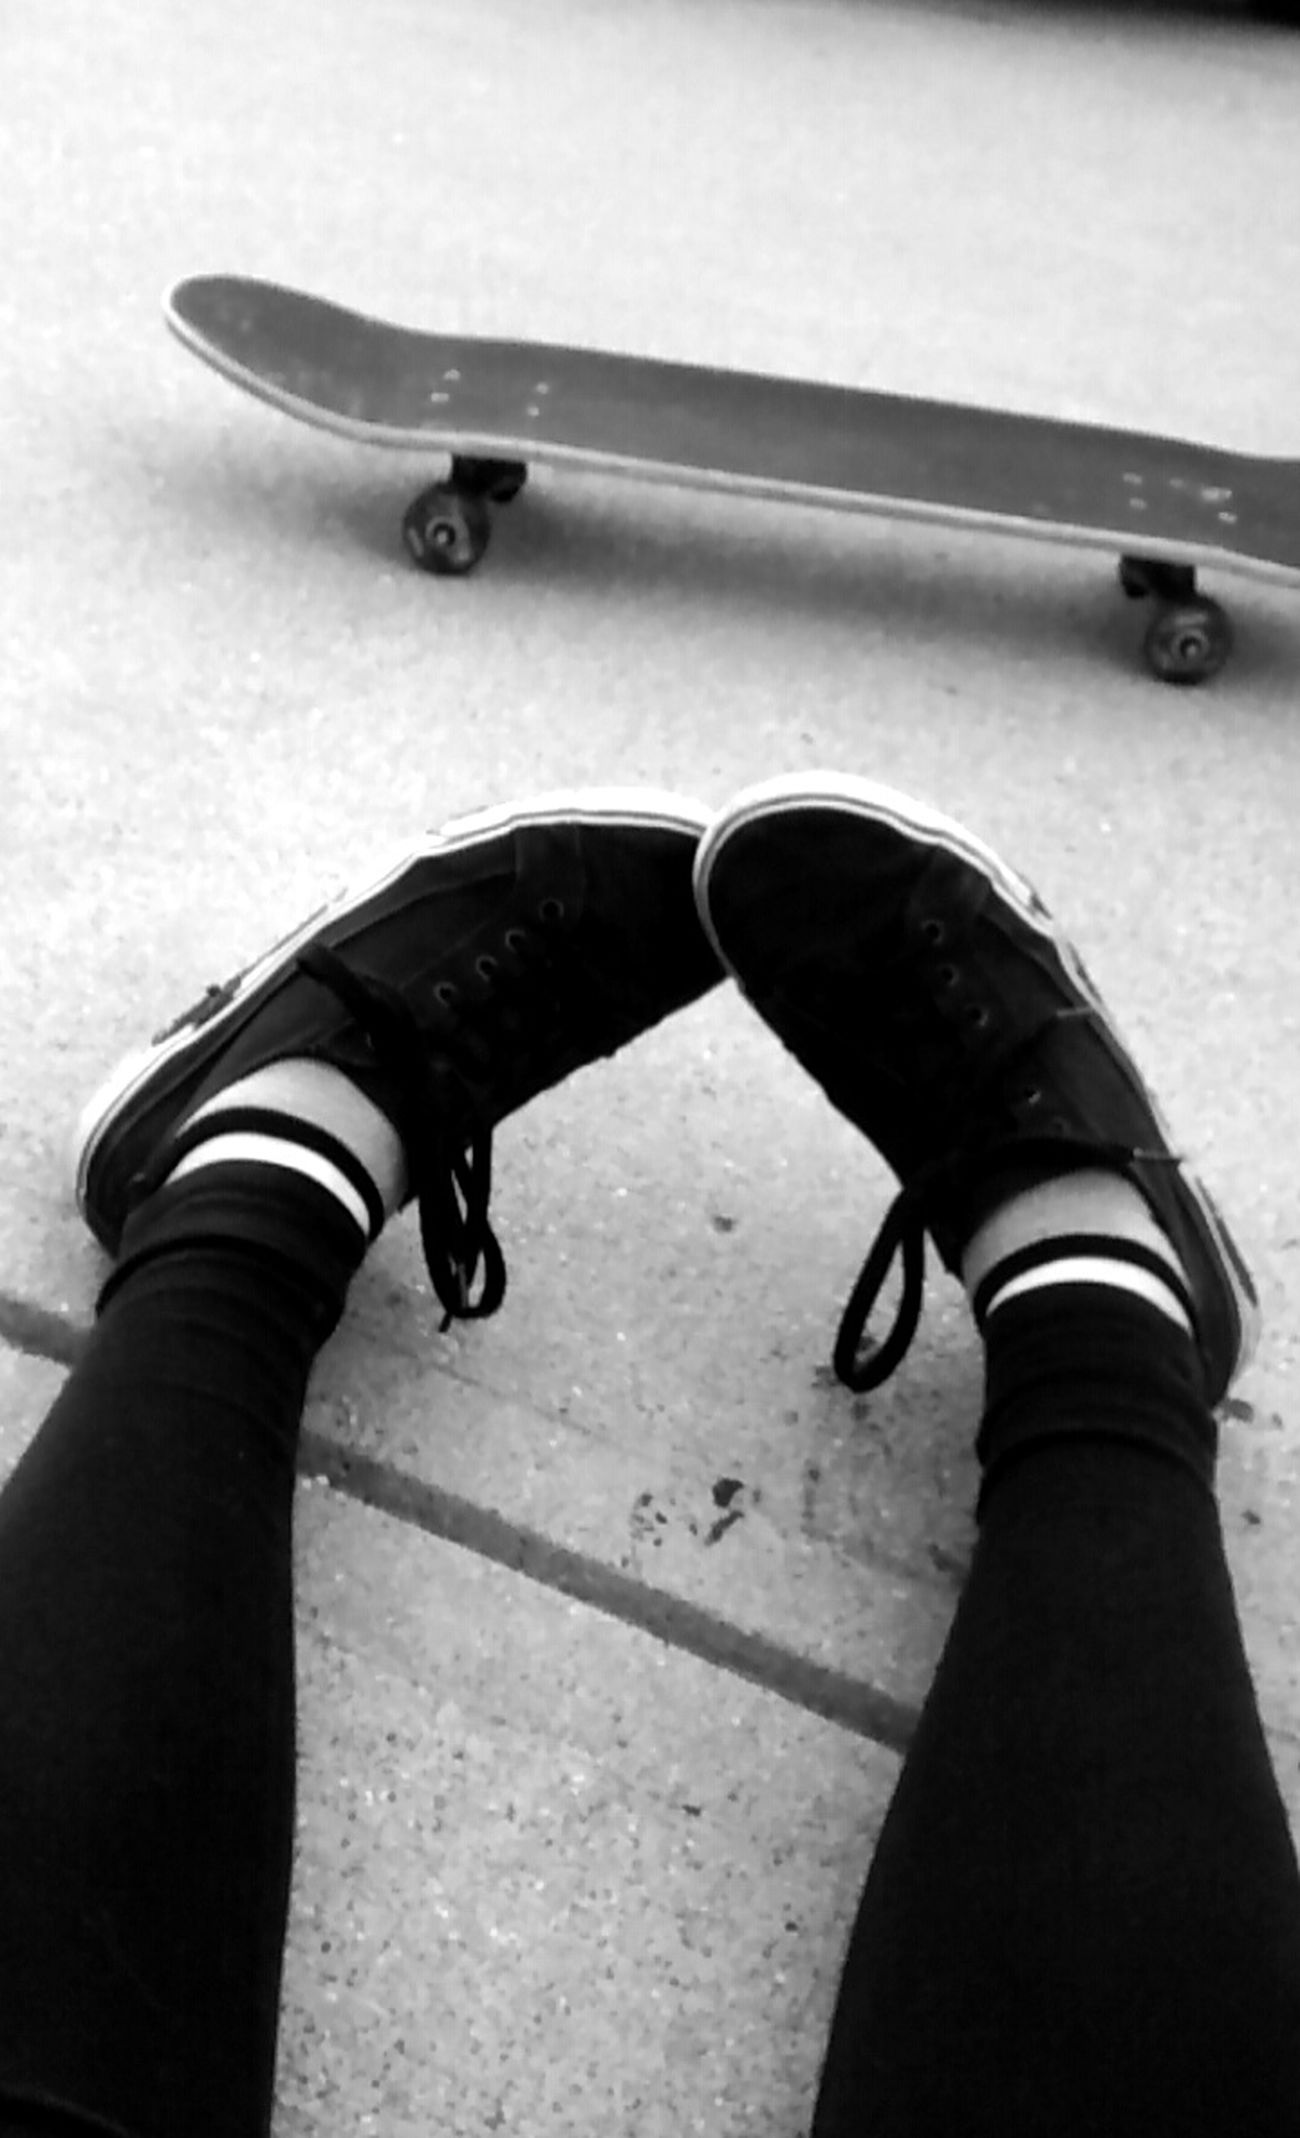 Hanging Out Taking Photos Check This Out That's Me Enjoying Life Relaxing Tired Skateboard Skateboarding Skate Skatelife Skate Life Skater Girl B&w Blackandwhite Black And White Thinking Outside Happy